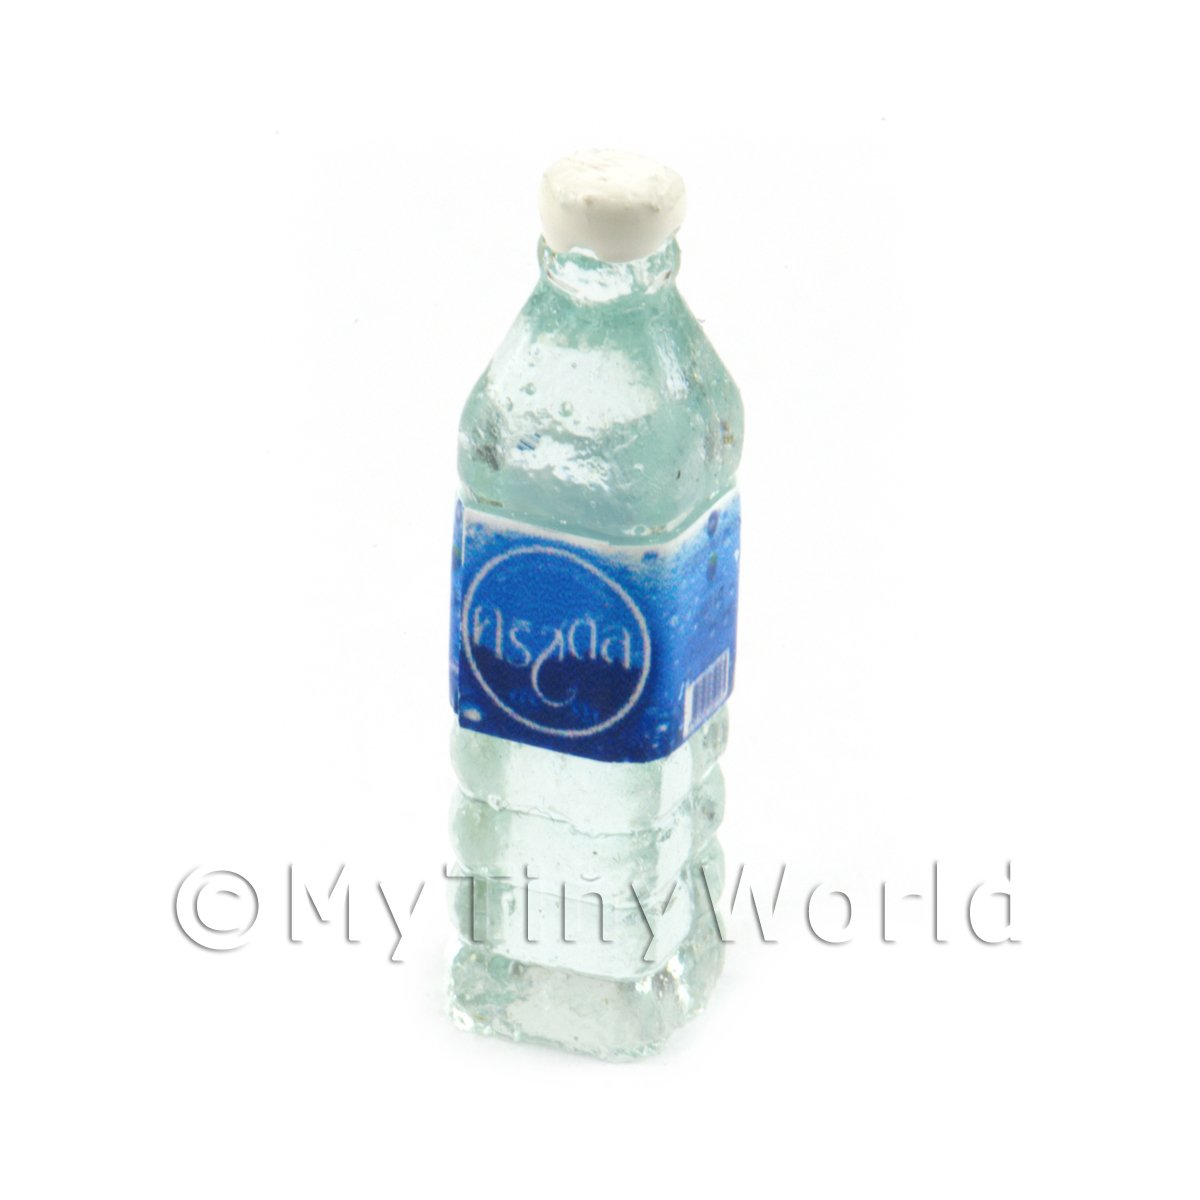 Dolls House Miniature Crystal Water Bottle